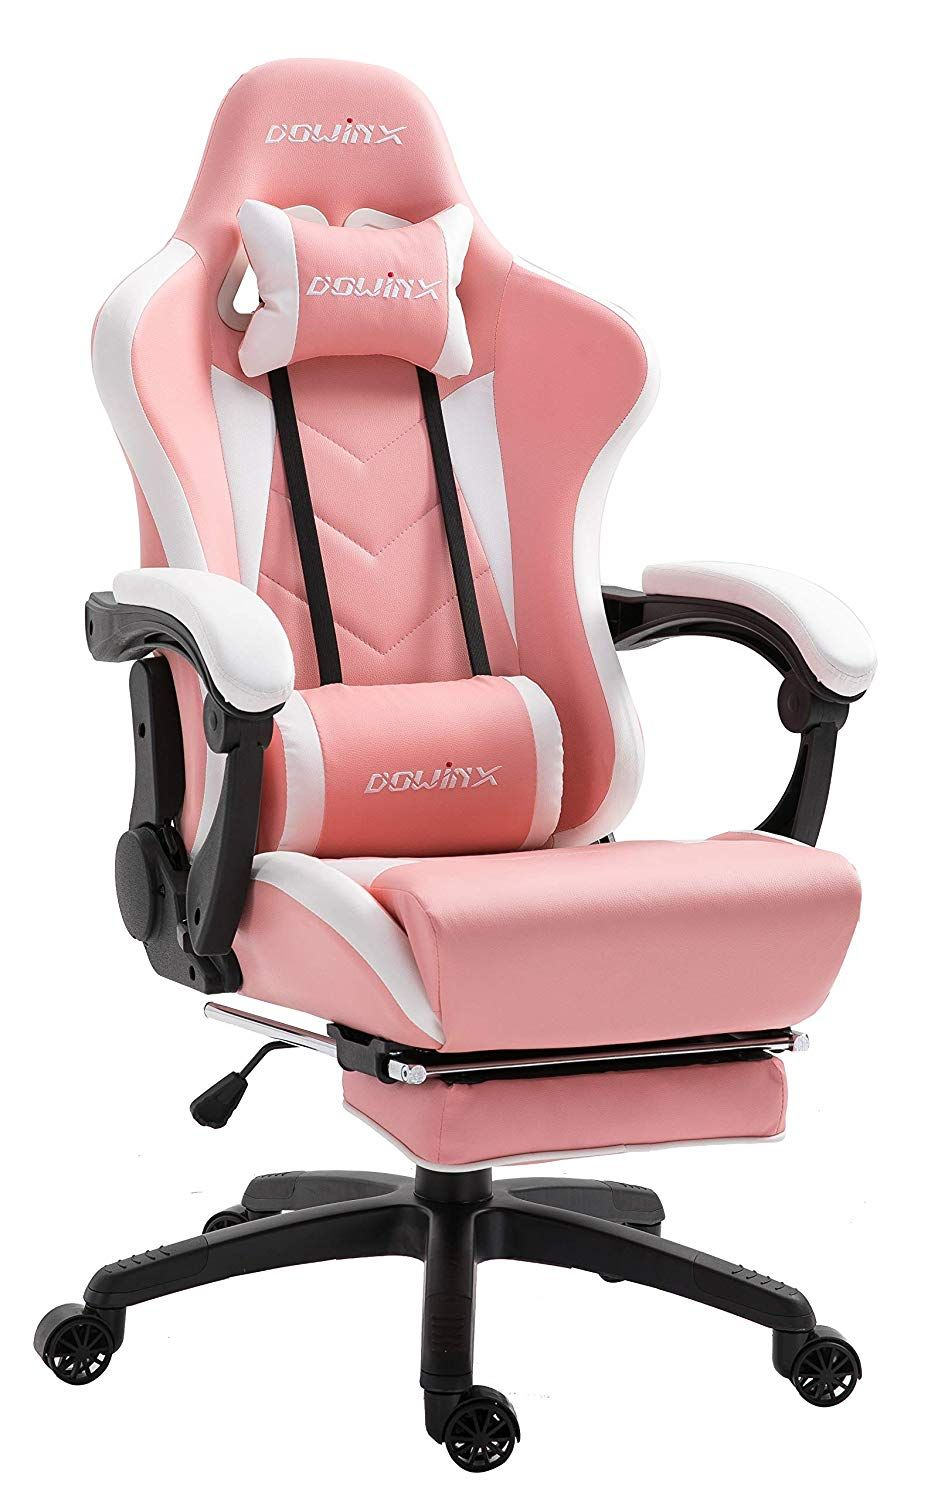 Dowinx gaming chair ergonomic racing style recliner with